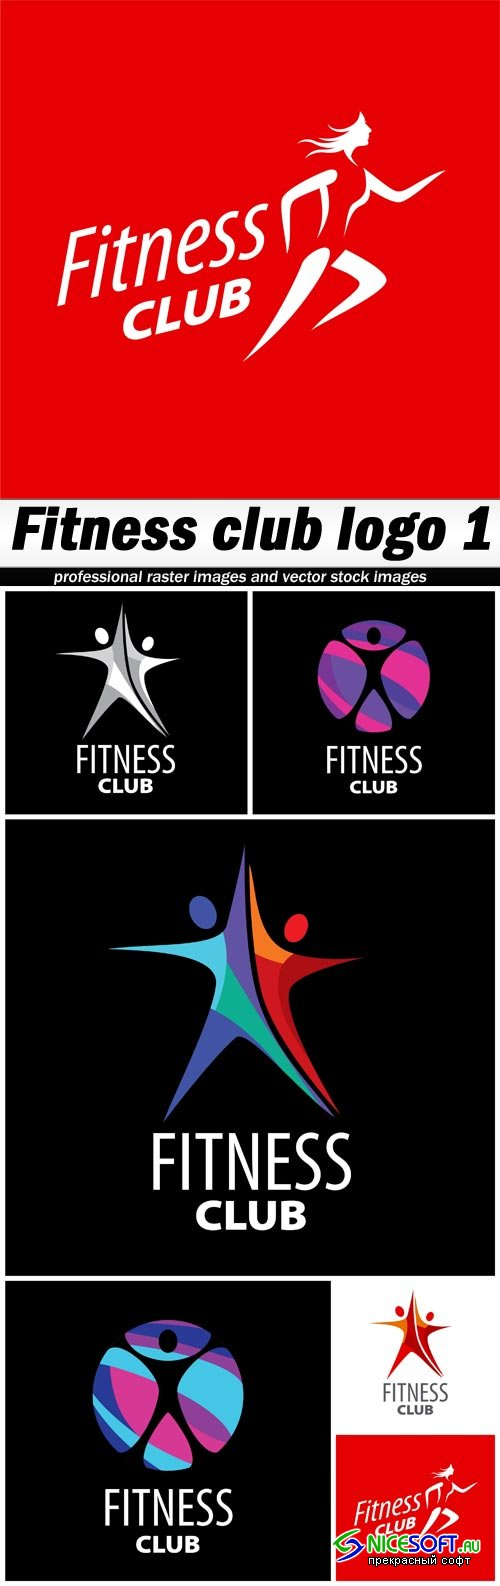 Fitness club logo 1 - 6 EPS